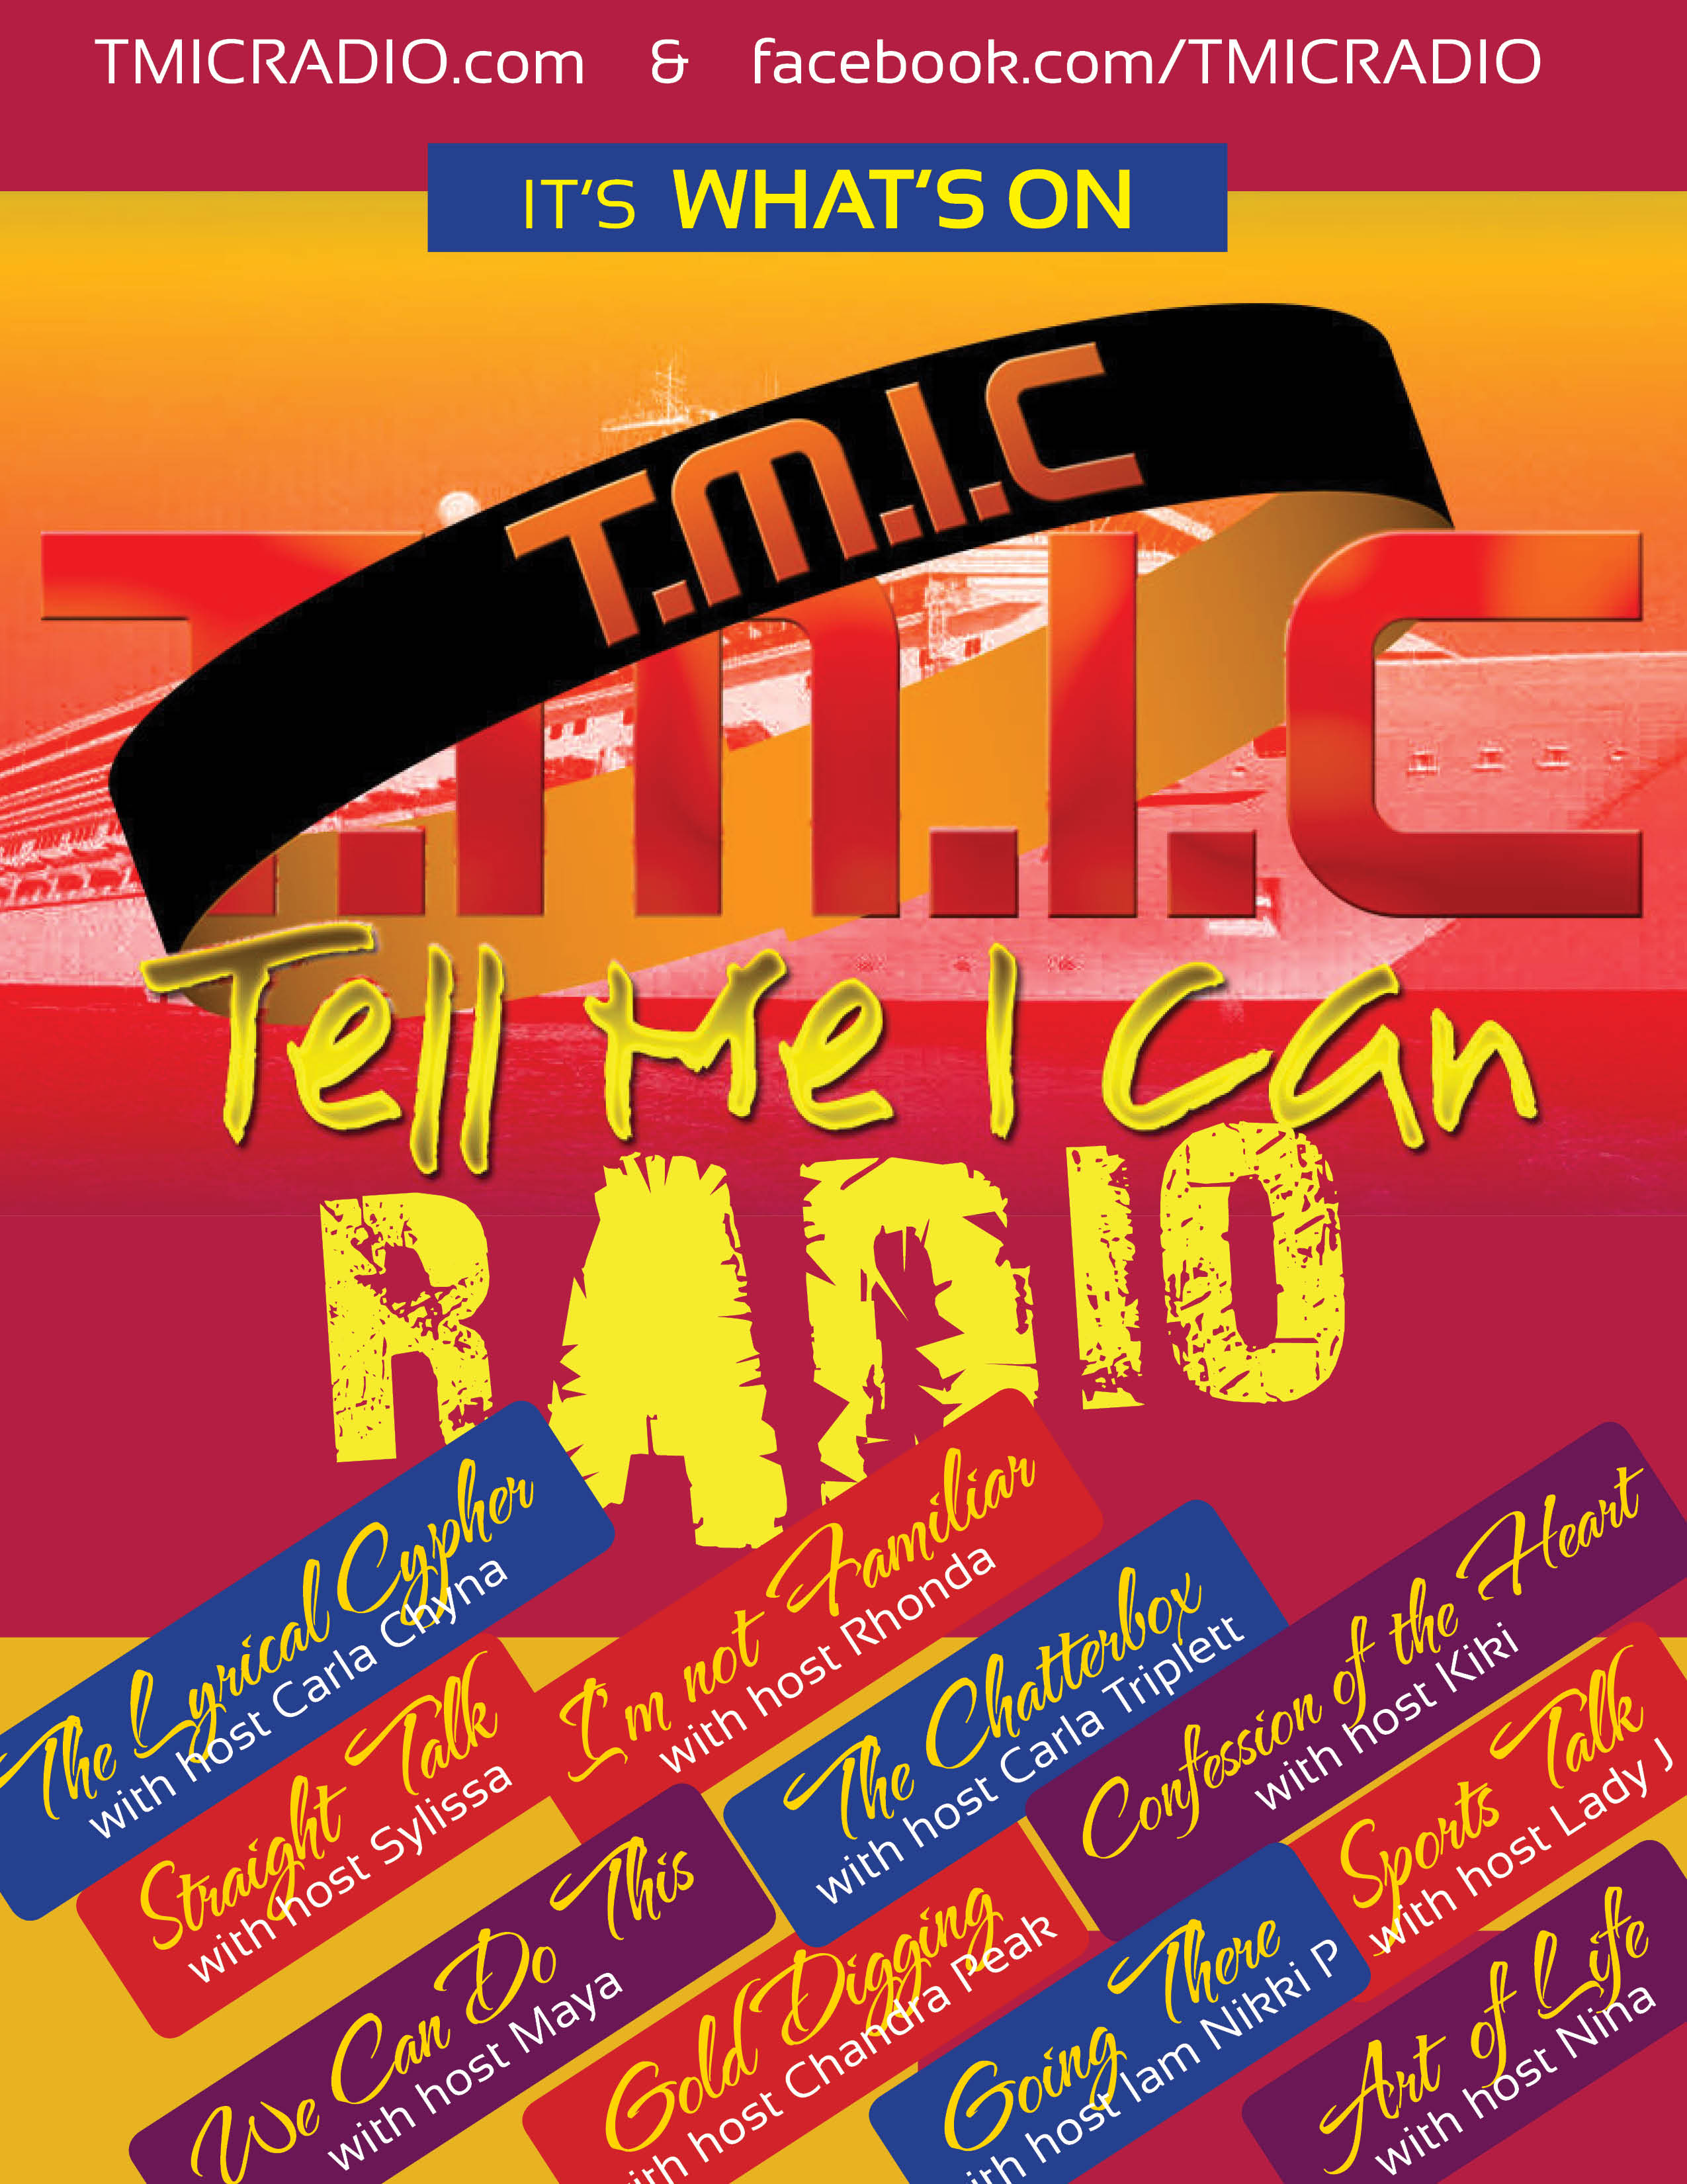 Launching TMIC Radio